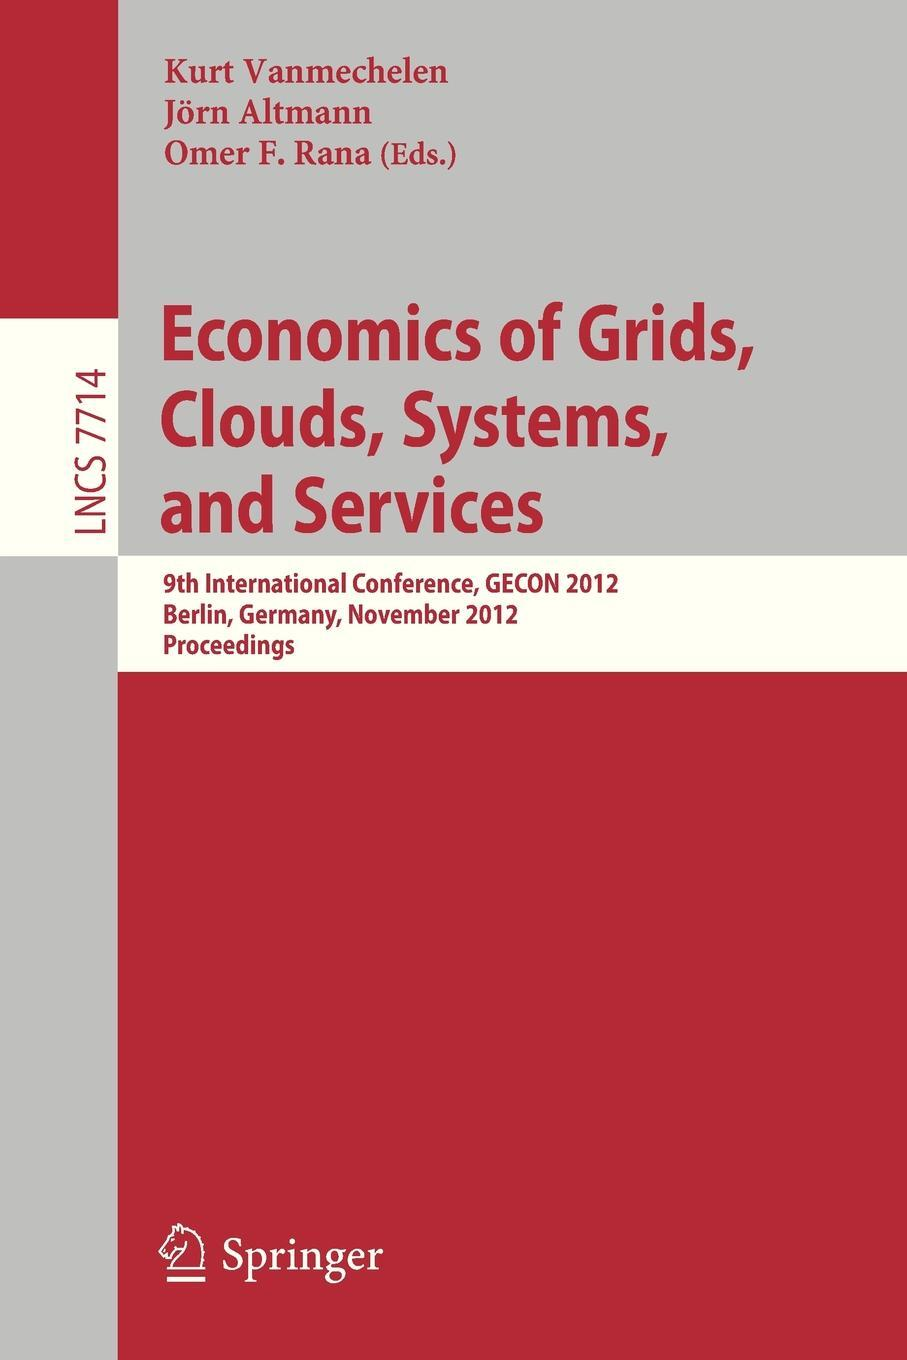 Economics of Grids, Clouds, Systems, and Services. 9th International Conference, GECON 2012, Berlin, Germany, November 27-28, 2012, Proceedings